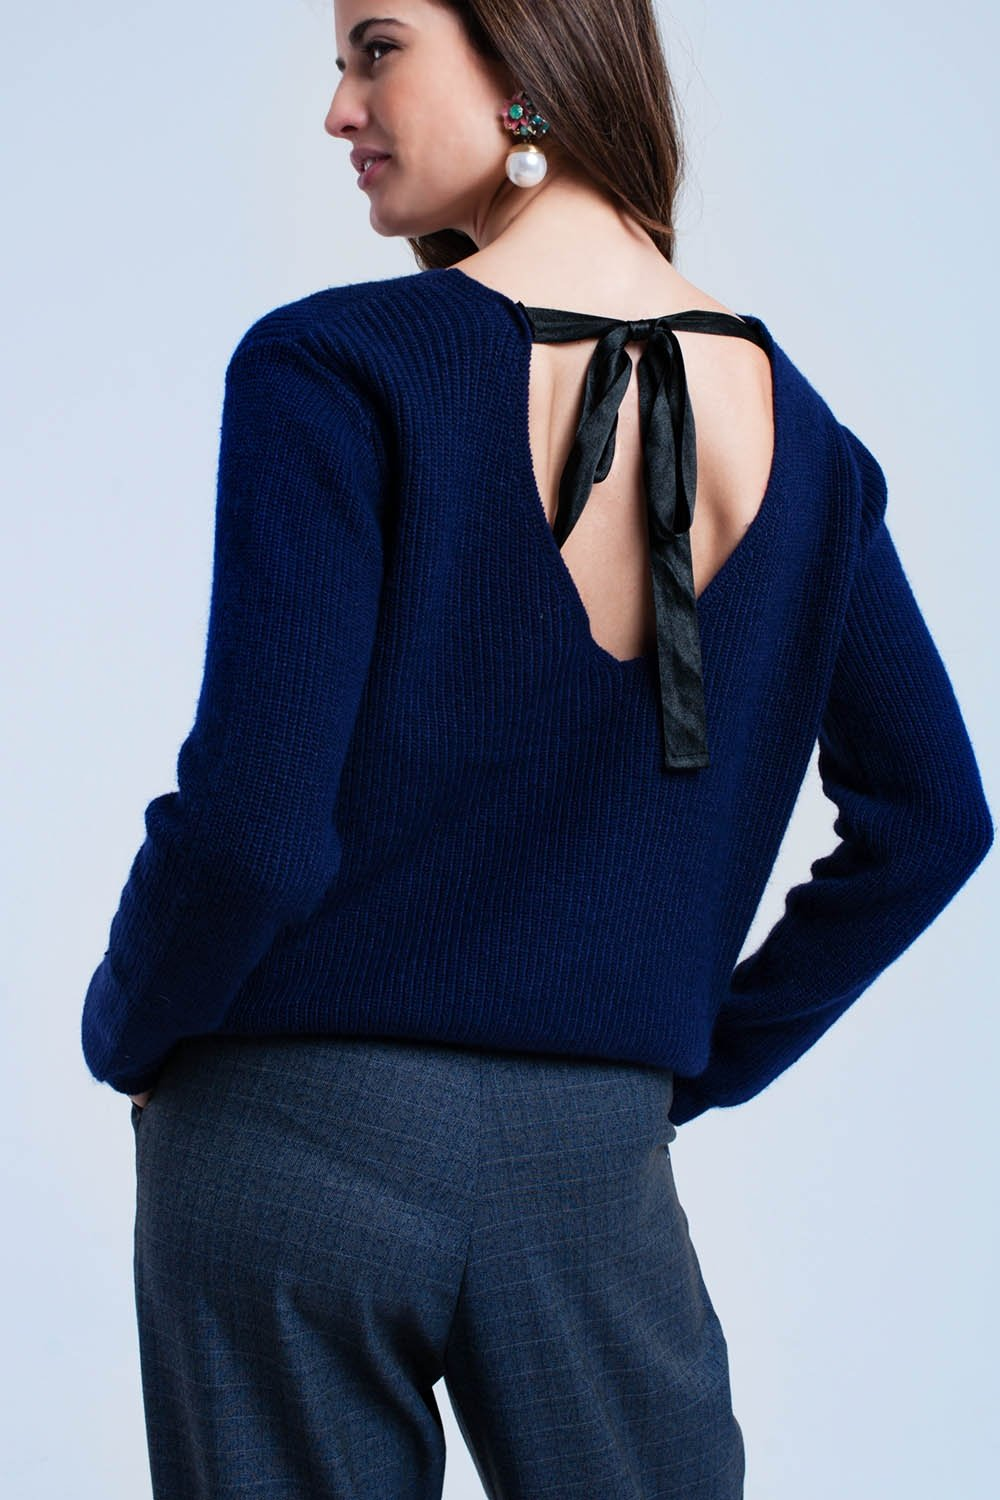 Navy Sweater With Black Ribbons